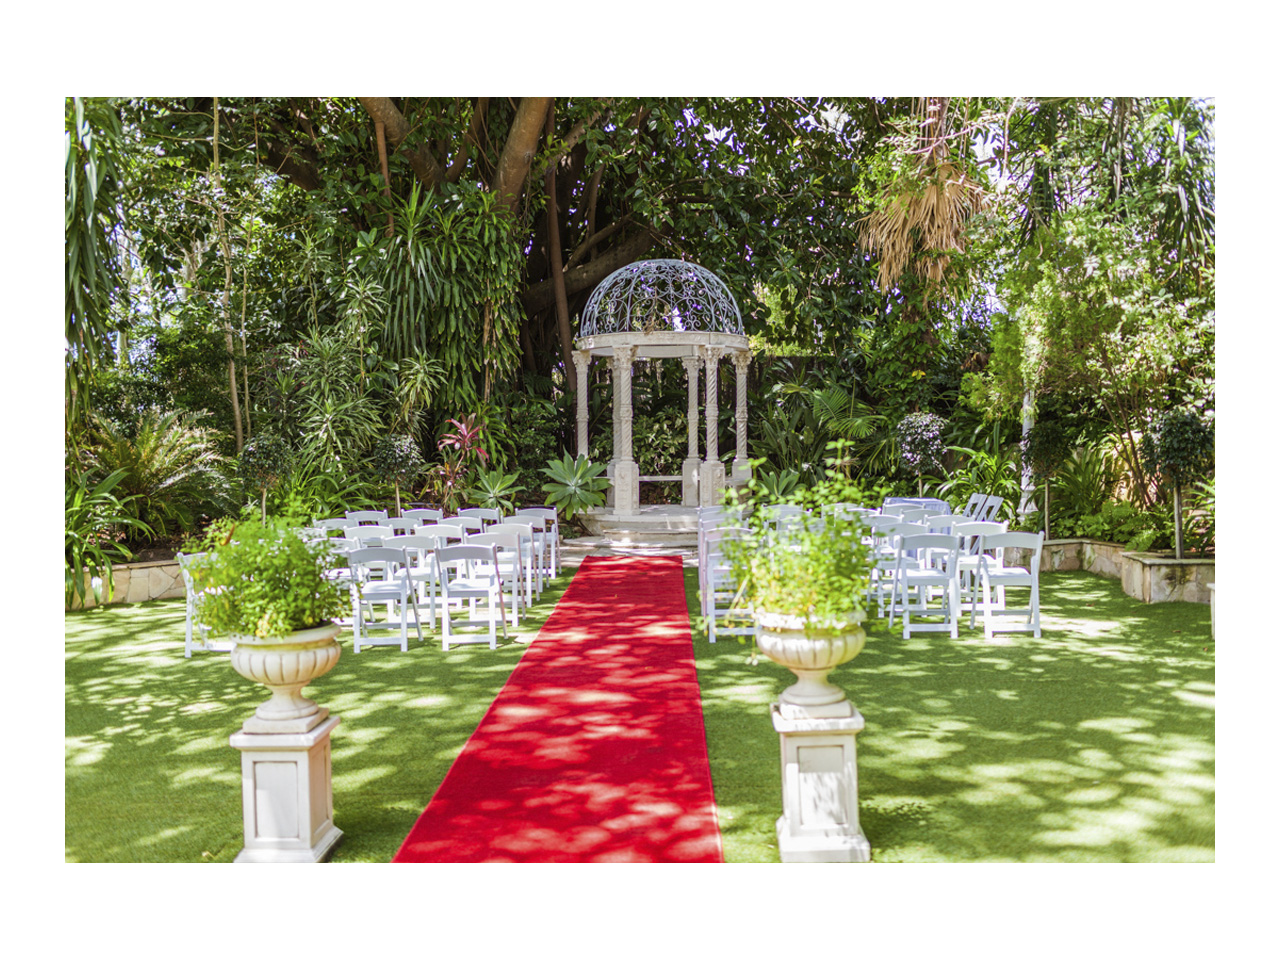 Garden gazebo set for a wedding with red carpet and rows of white chairs either side